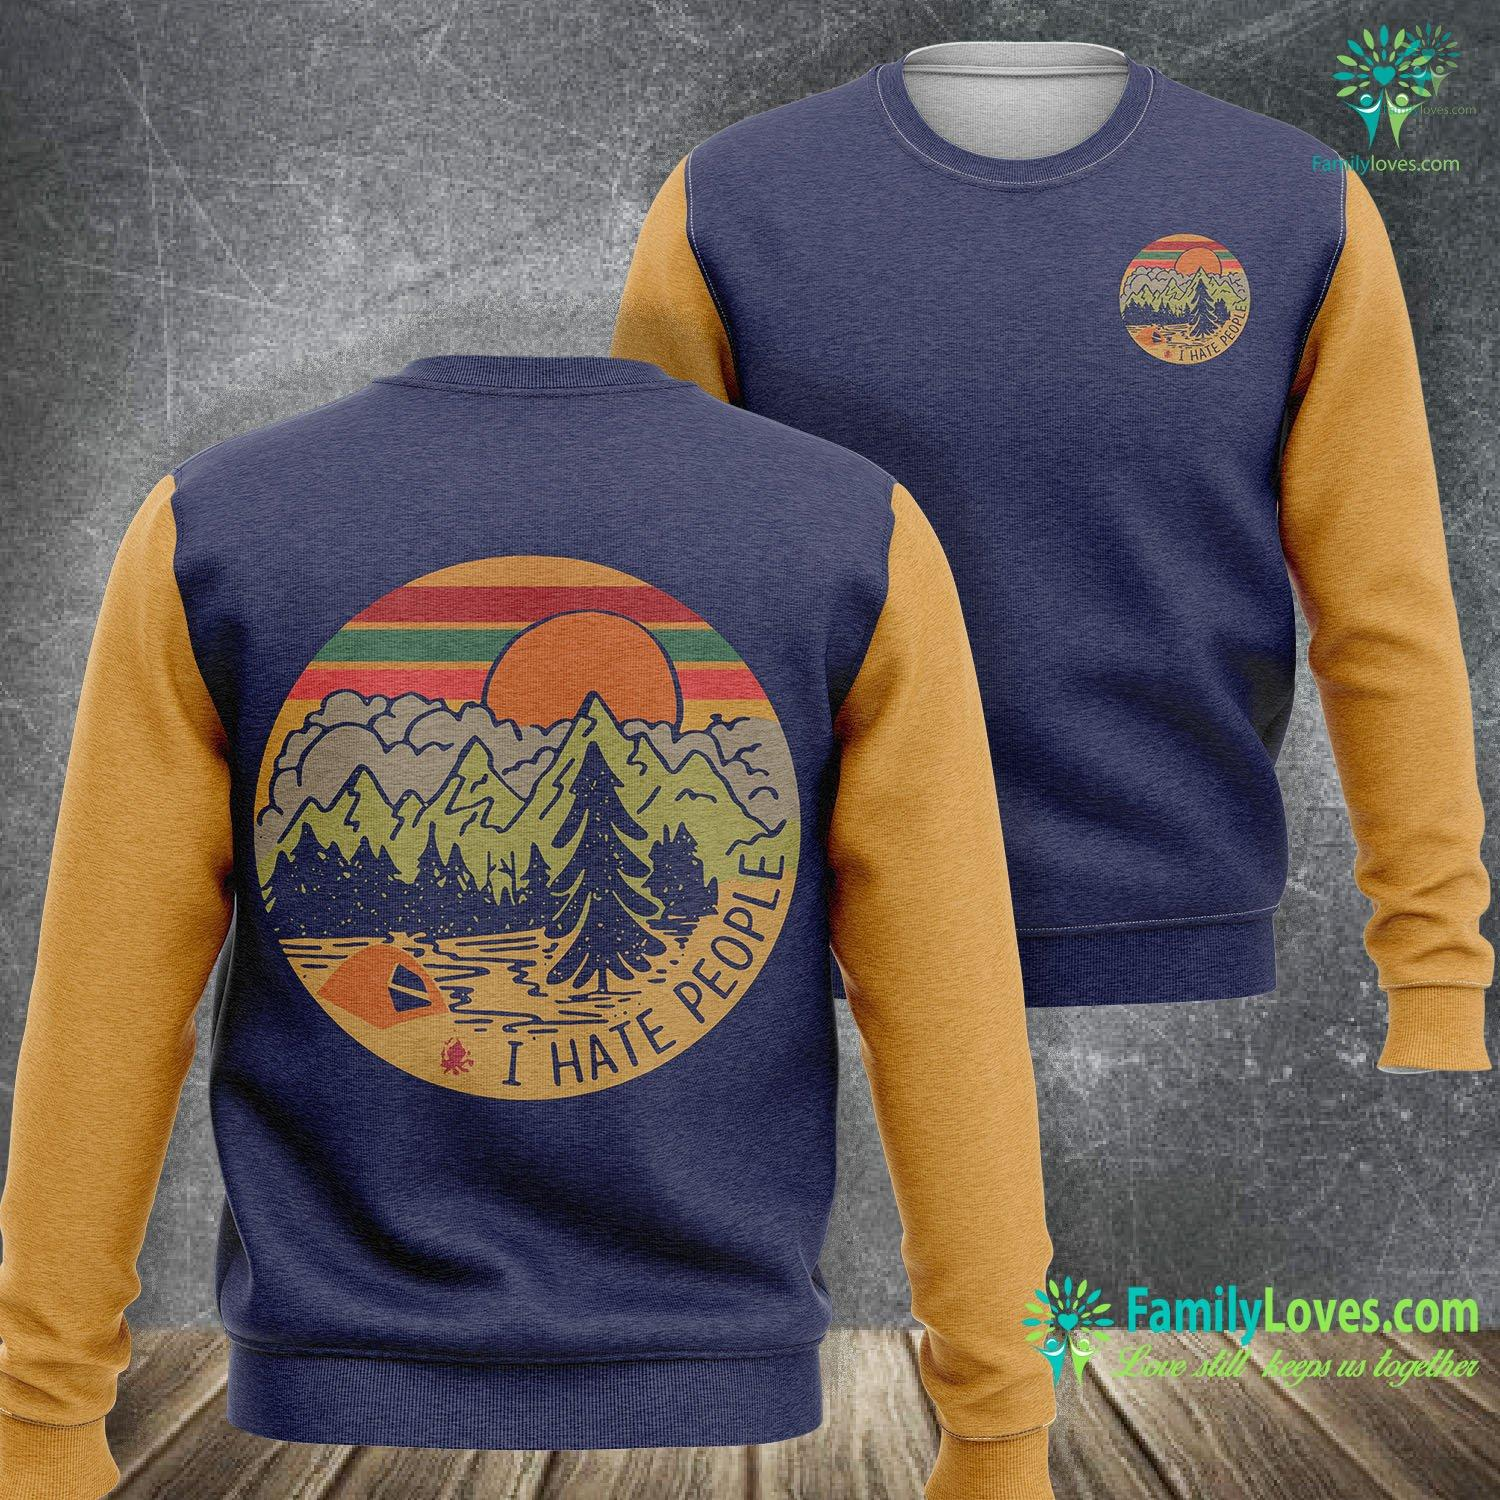 I Hate People Camping 3D All Over Printed Sweatshirt Familyloves.com